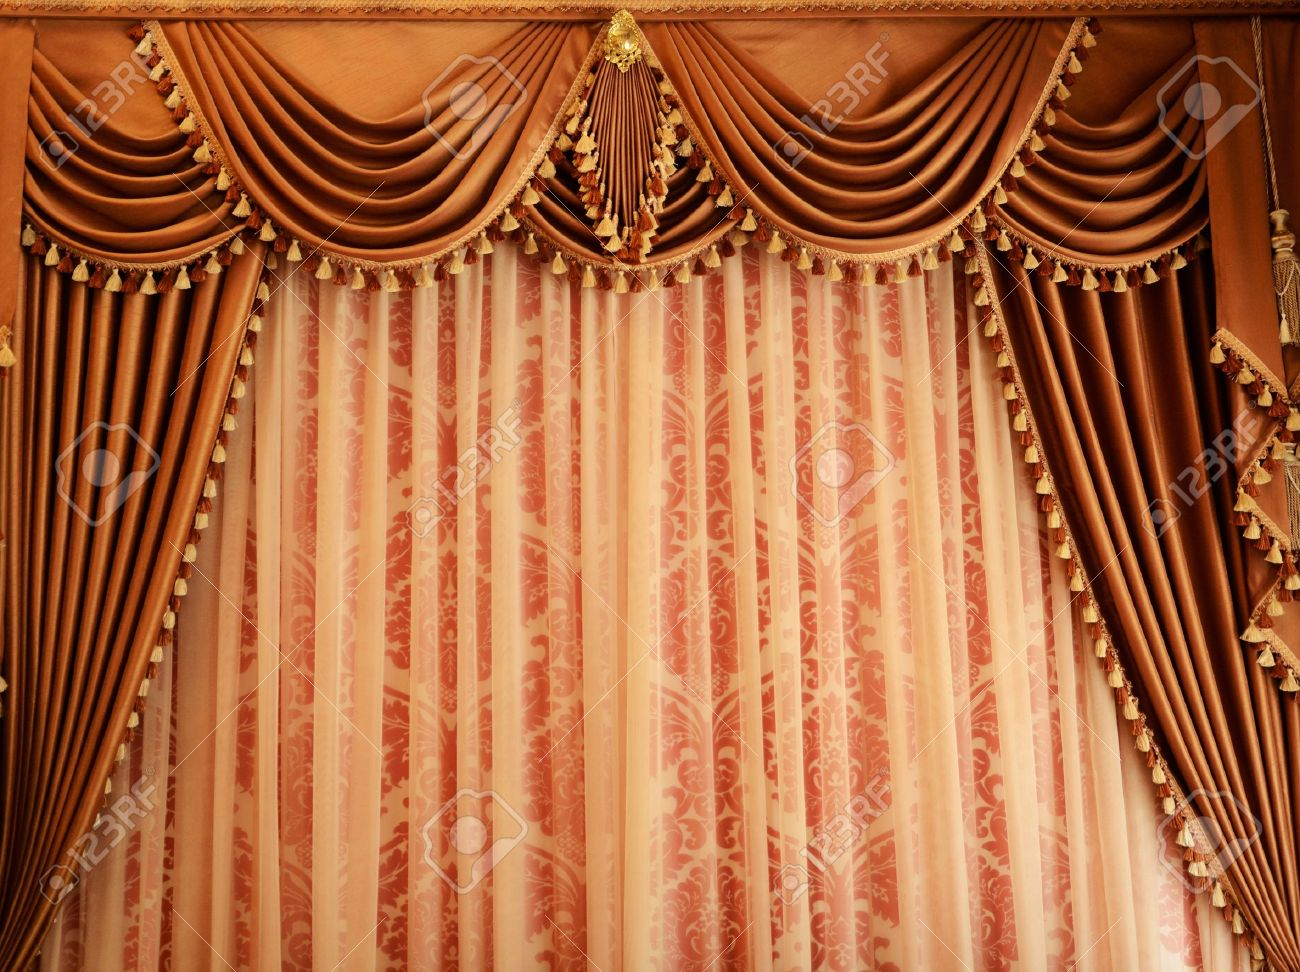 Royalty free or white curtain background drapes royalty free stock - Beautiful Vintage Curtain Background Stock Photo 13724087